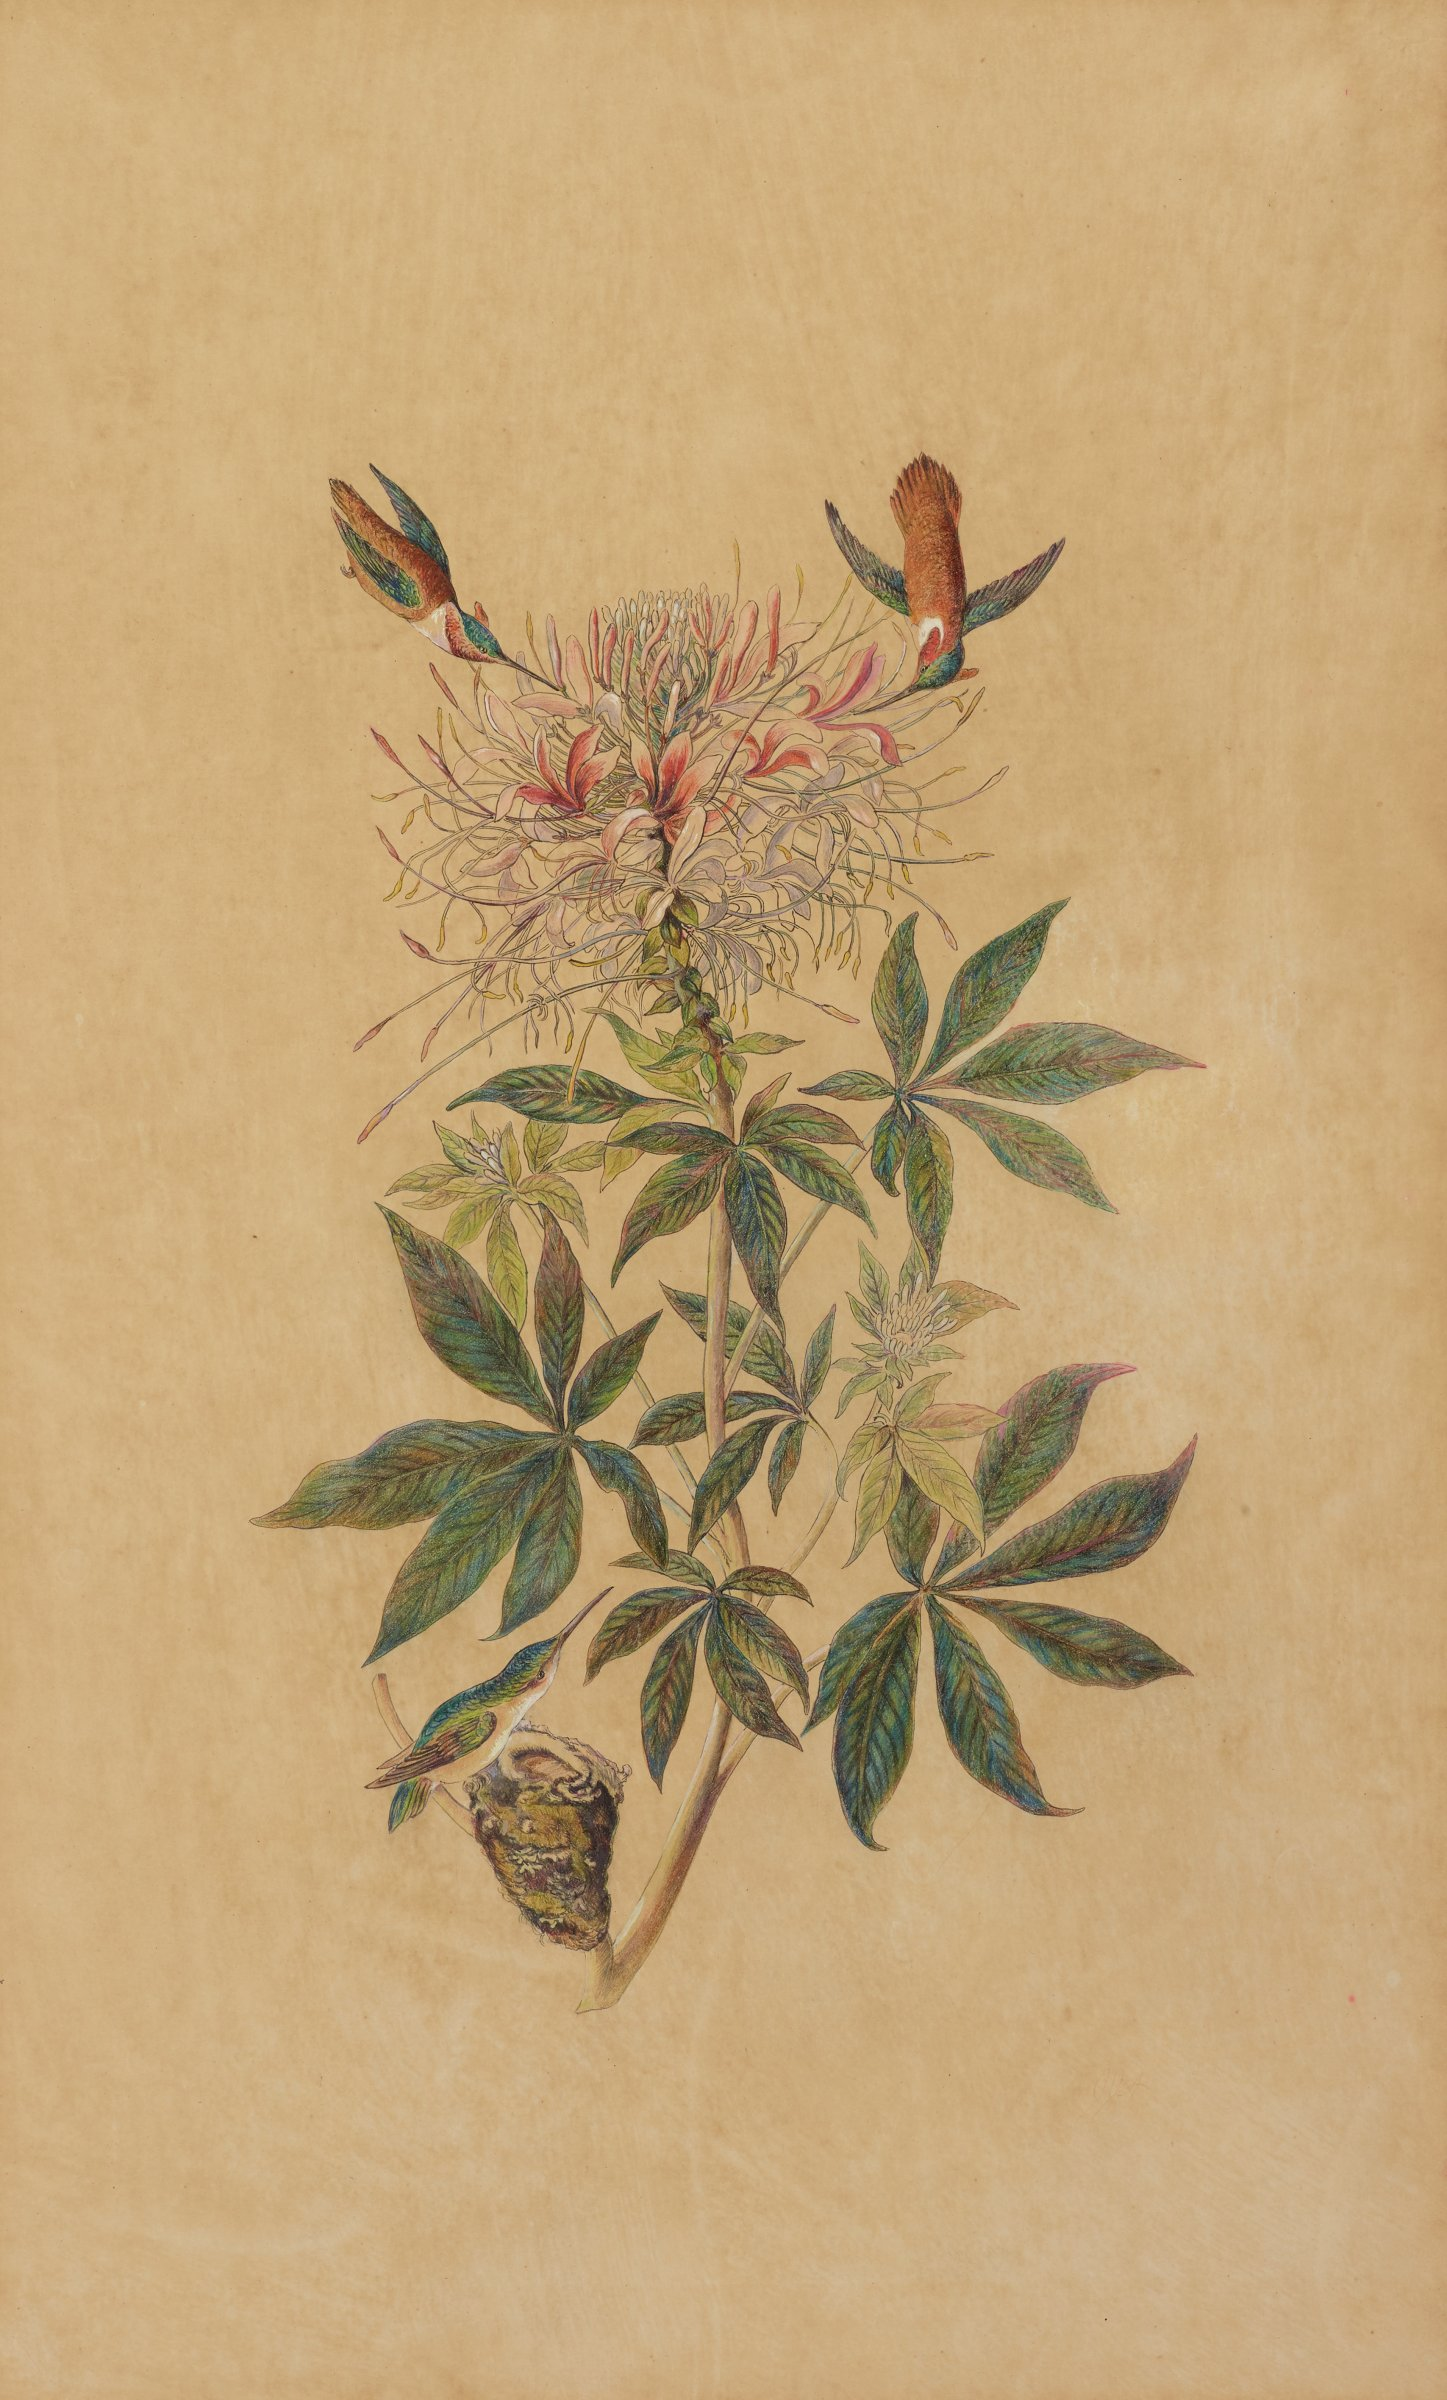 Three hummingbirds surround a flowering pink and white plant with this petals. Two of the hummingbirds hover above the flower with their beaks nestled between the petals. The third hummingbird rests on a nest near the bottom of the composition with its head tilted upwards.